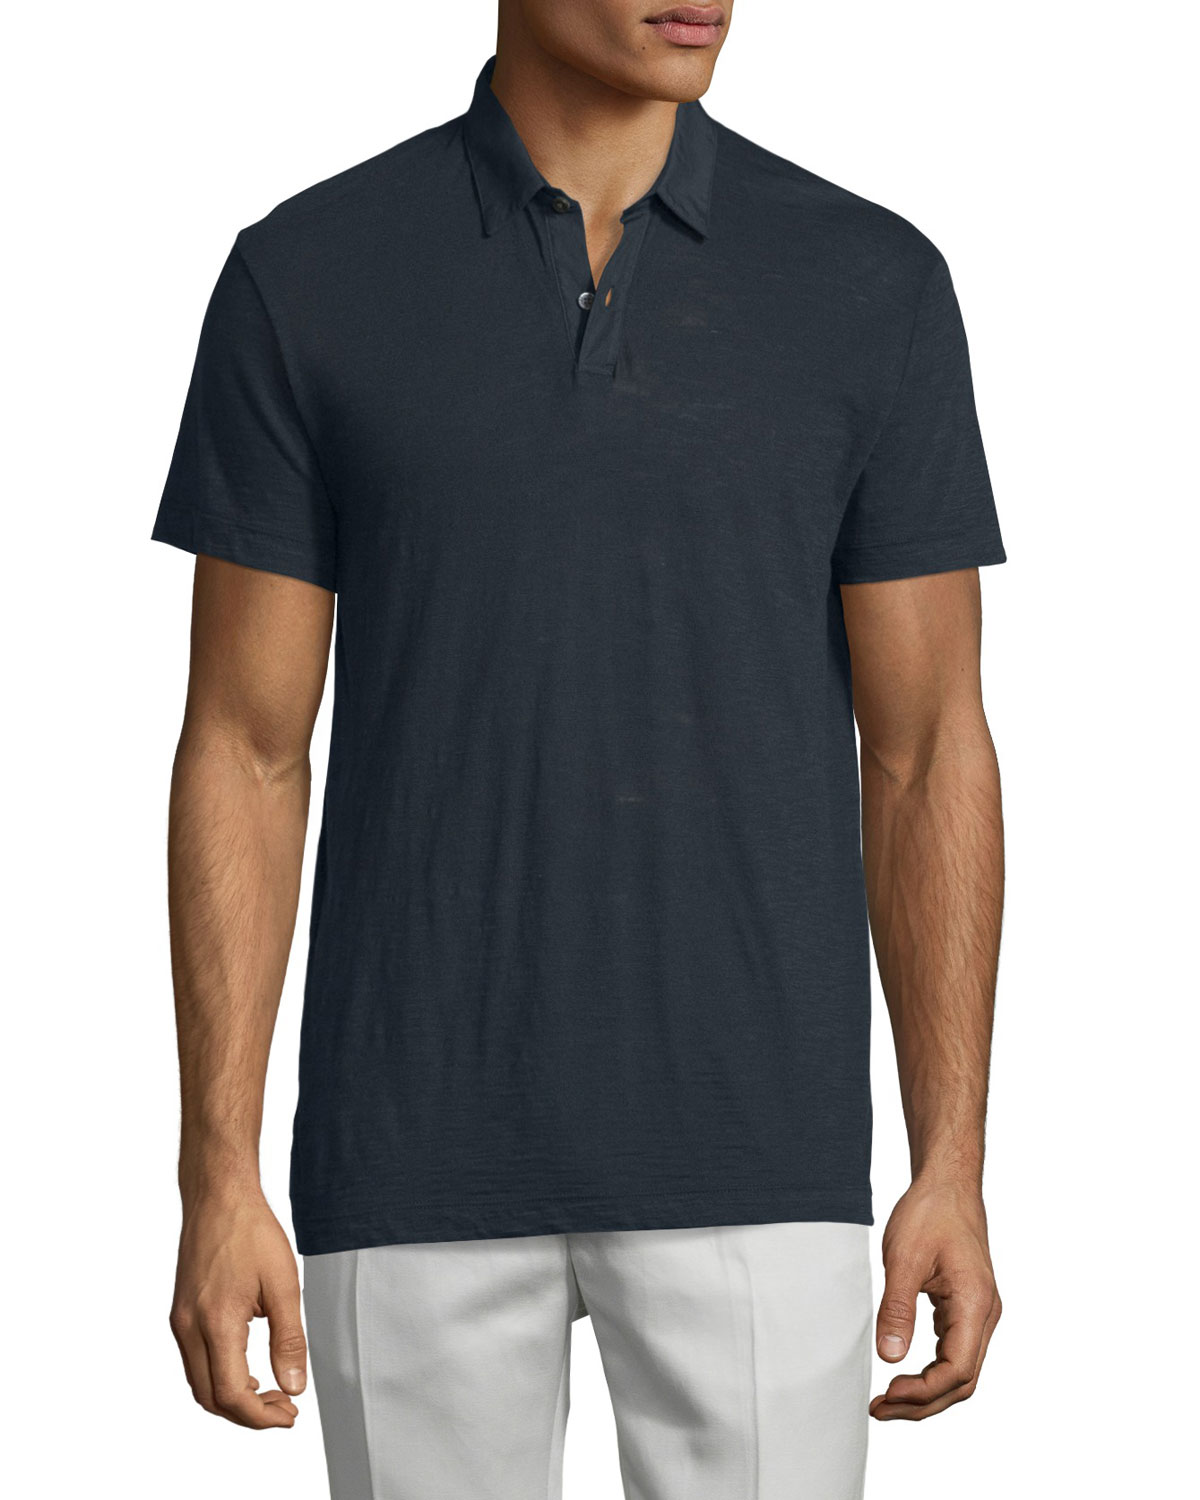 Dennison Short-Sleeve Slub Polo Shirt, Eclipse